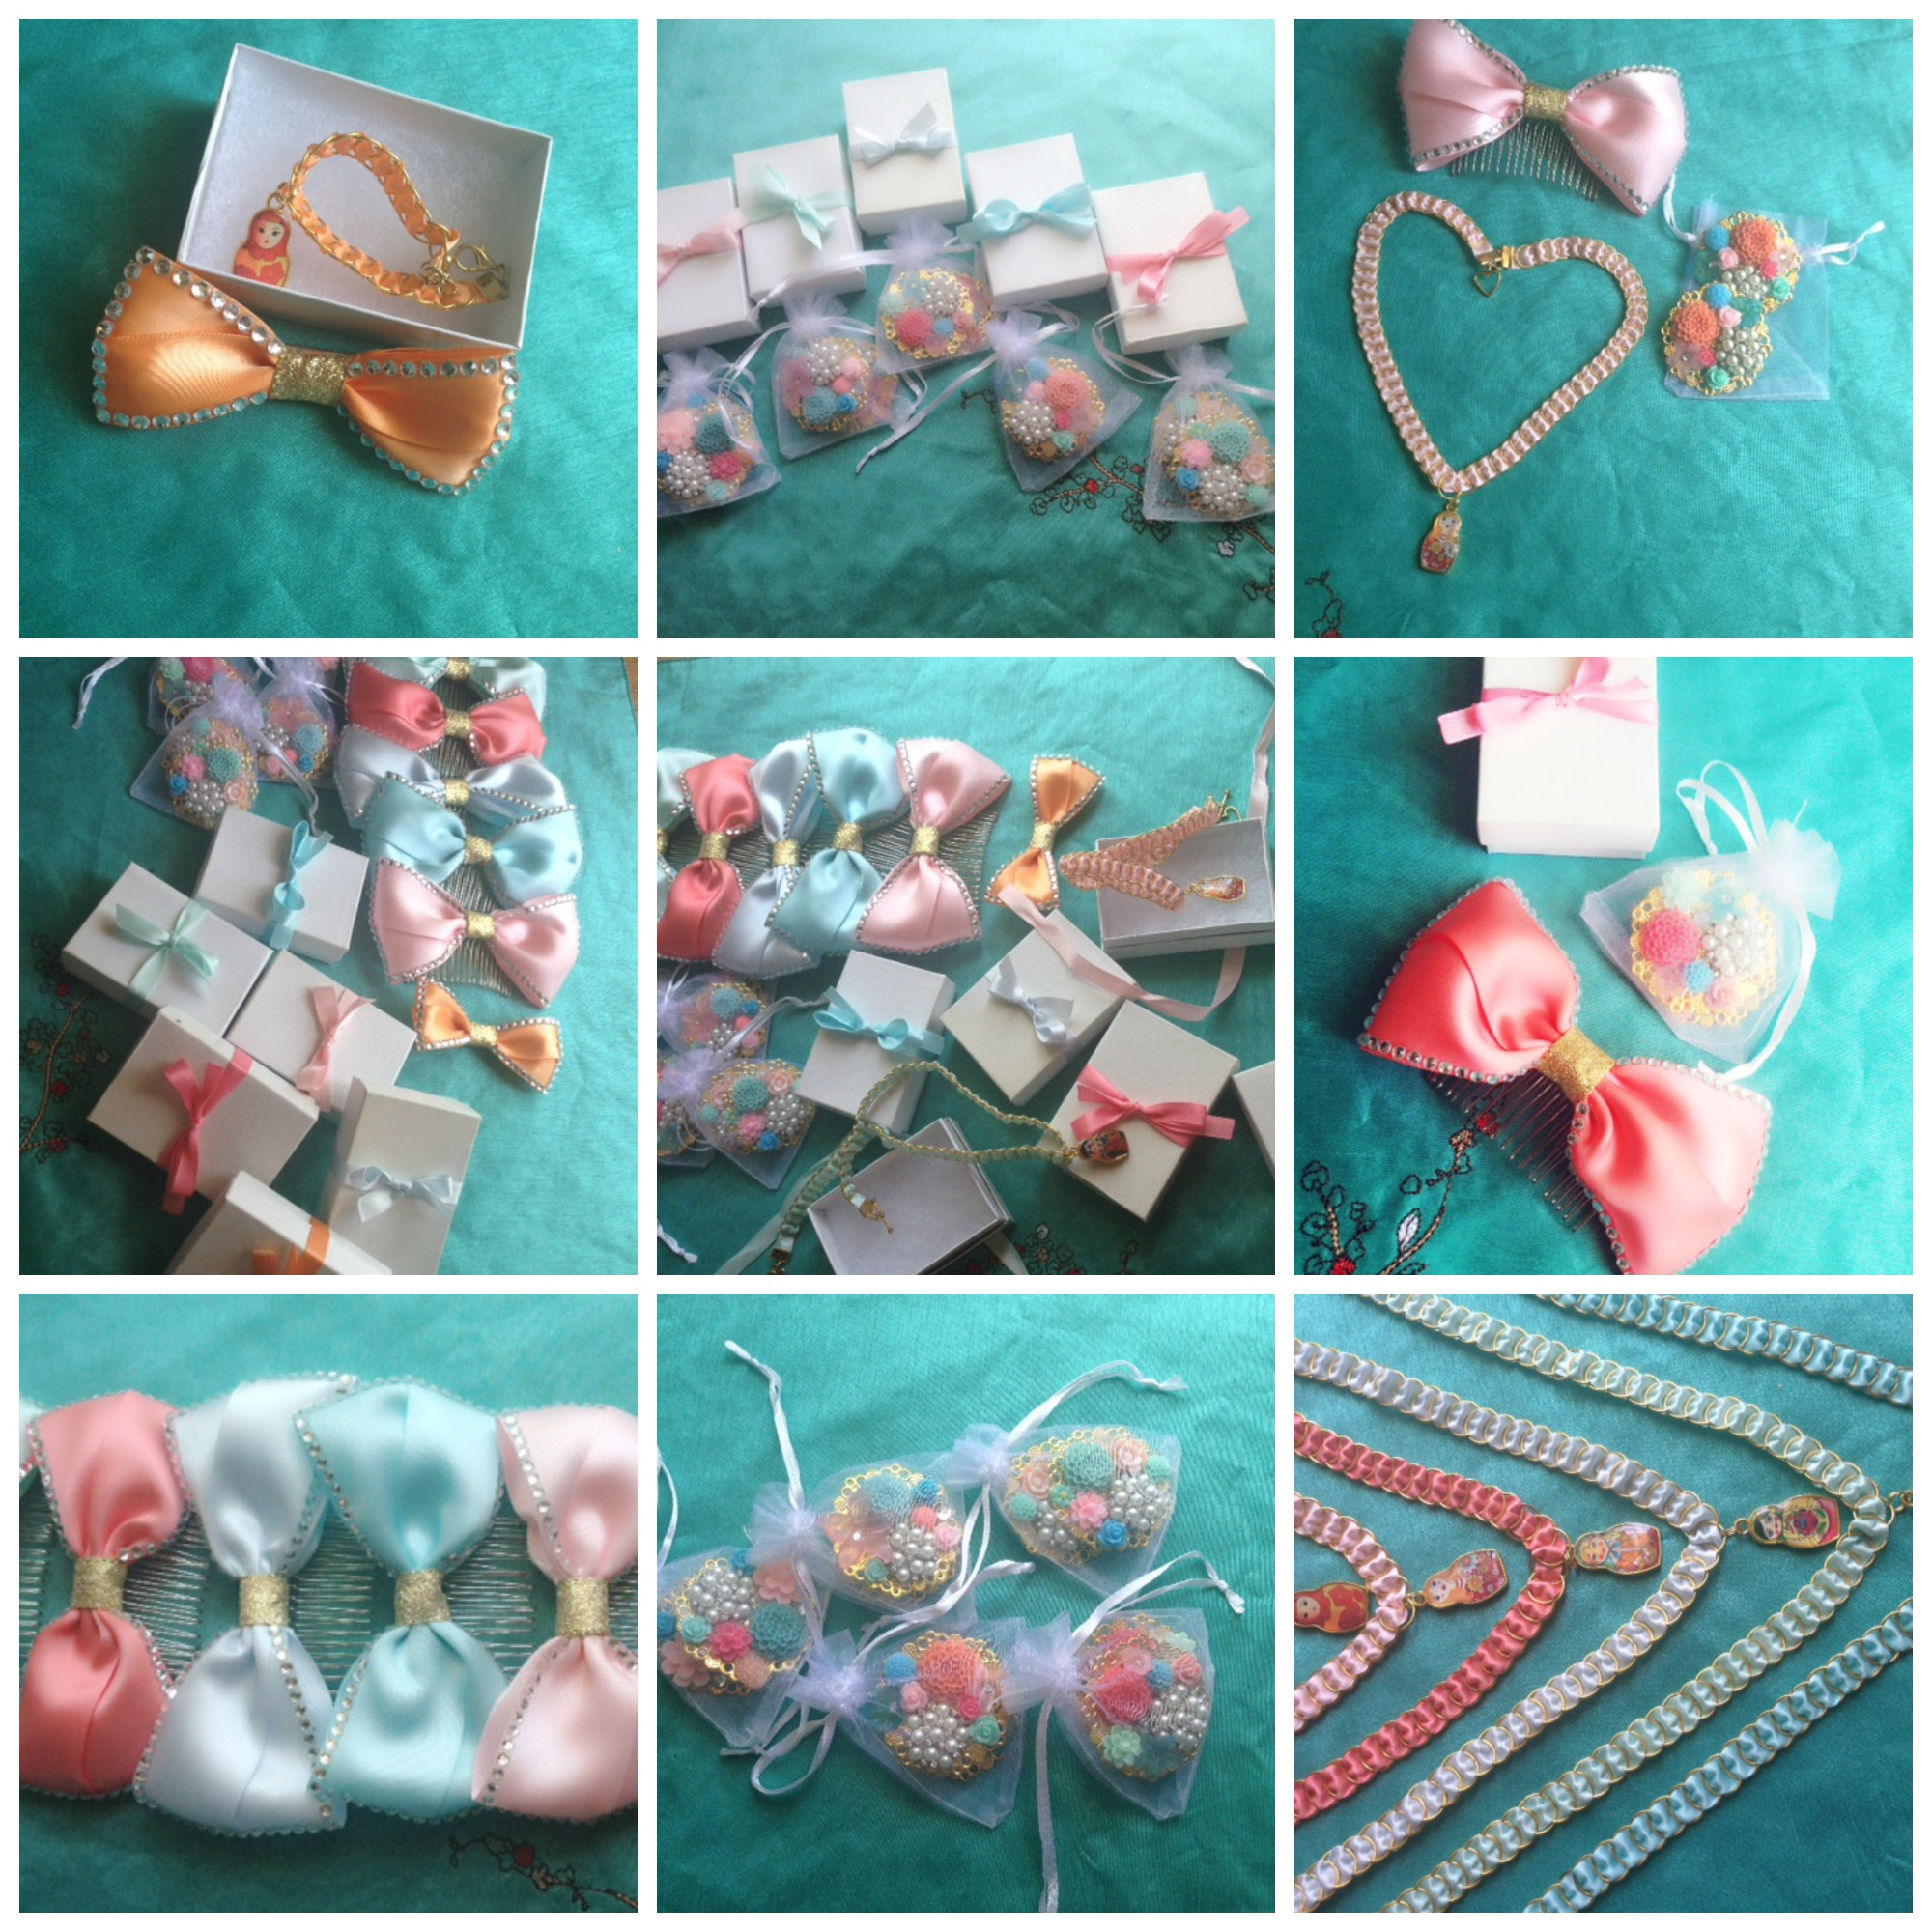 Bridal party accessories